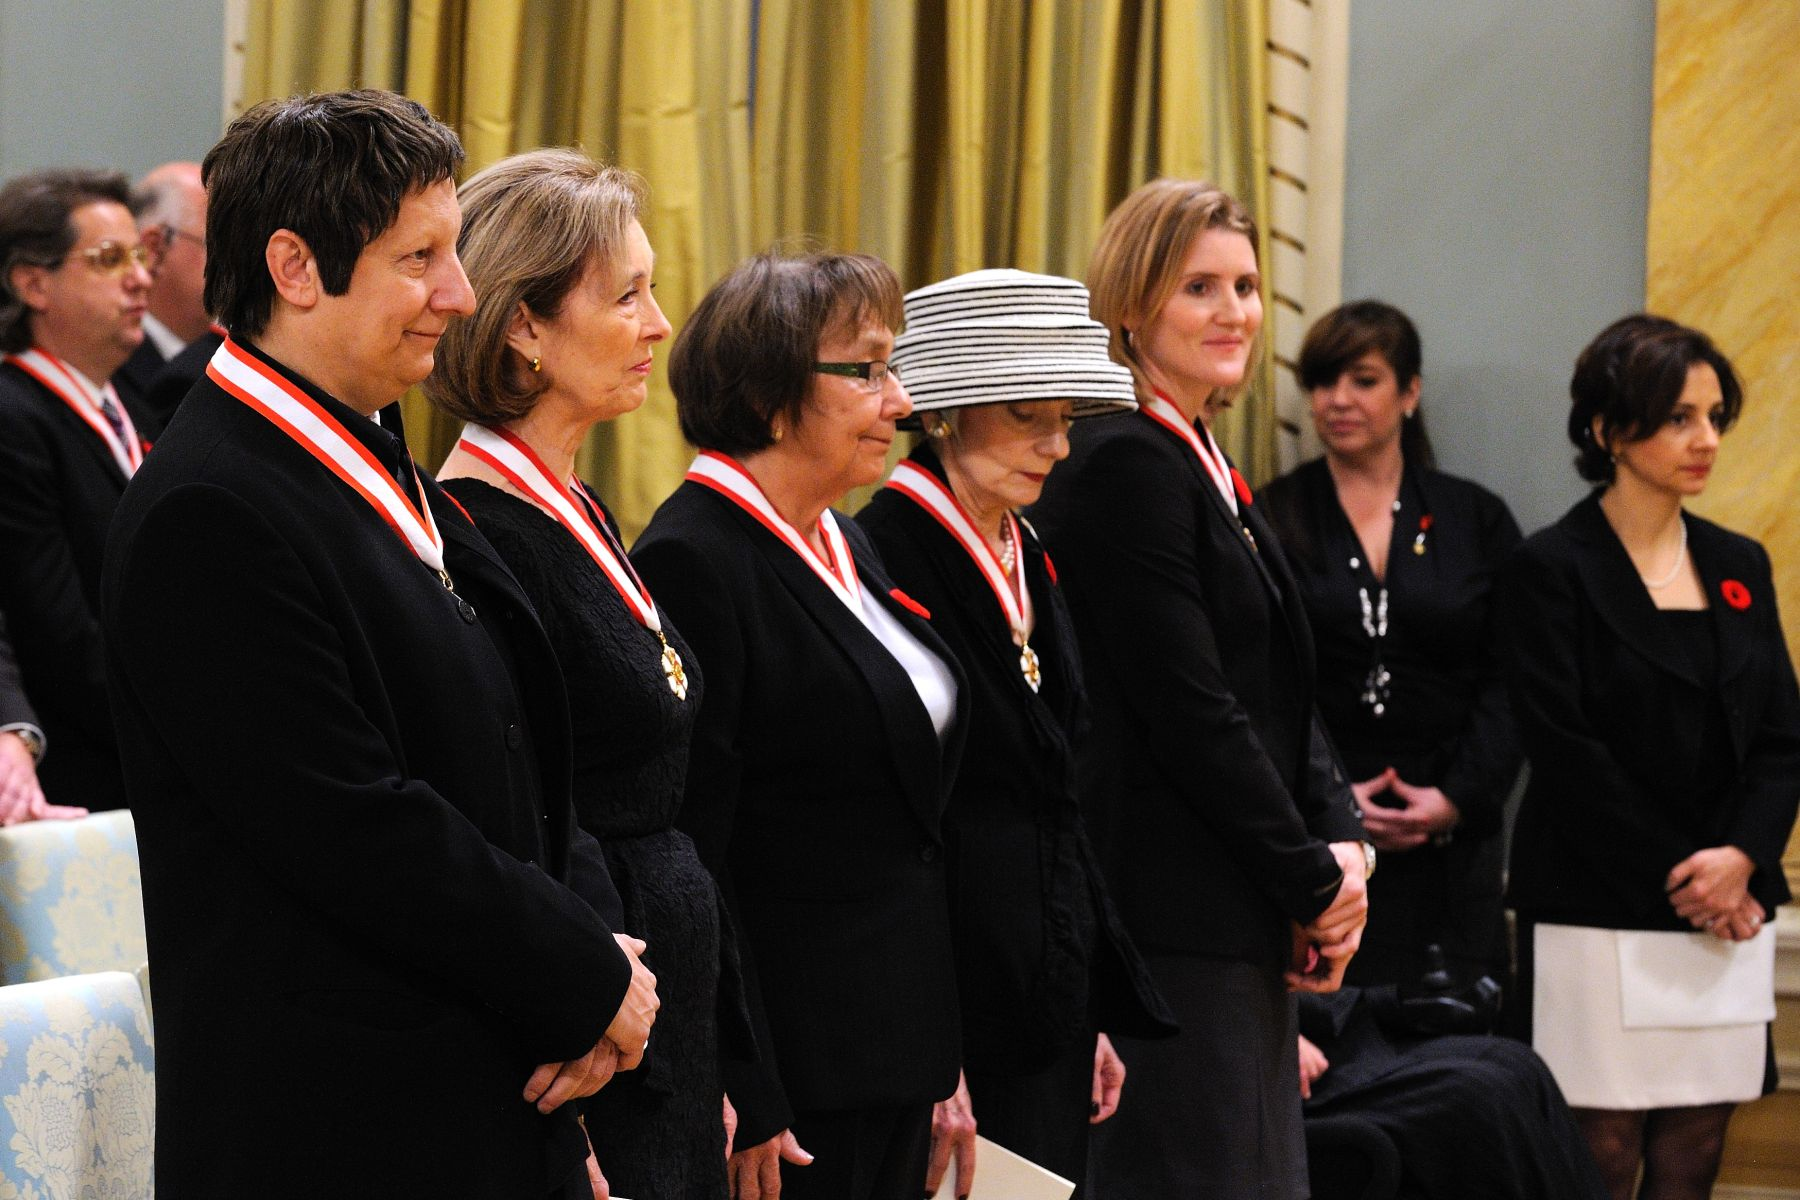 The Order of Canada was created in 1967, during Canada's centennial year, to recognize a lifetime of outstanding achievement, dedication to the community and service to the nation. Since its creation, more than 5 000 people from all sectors of society have been invested into the Order.